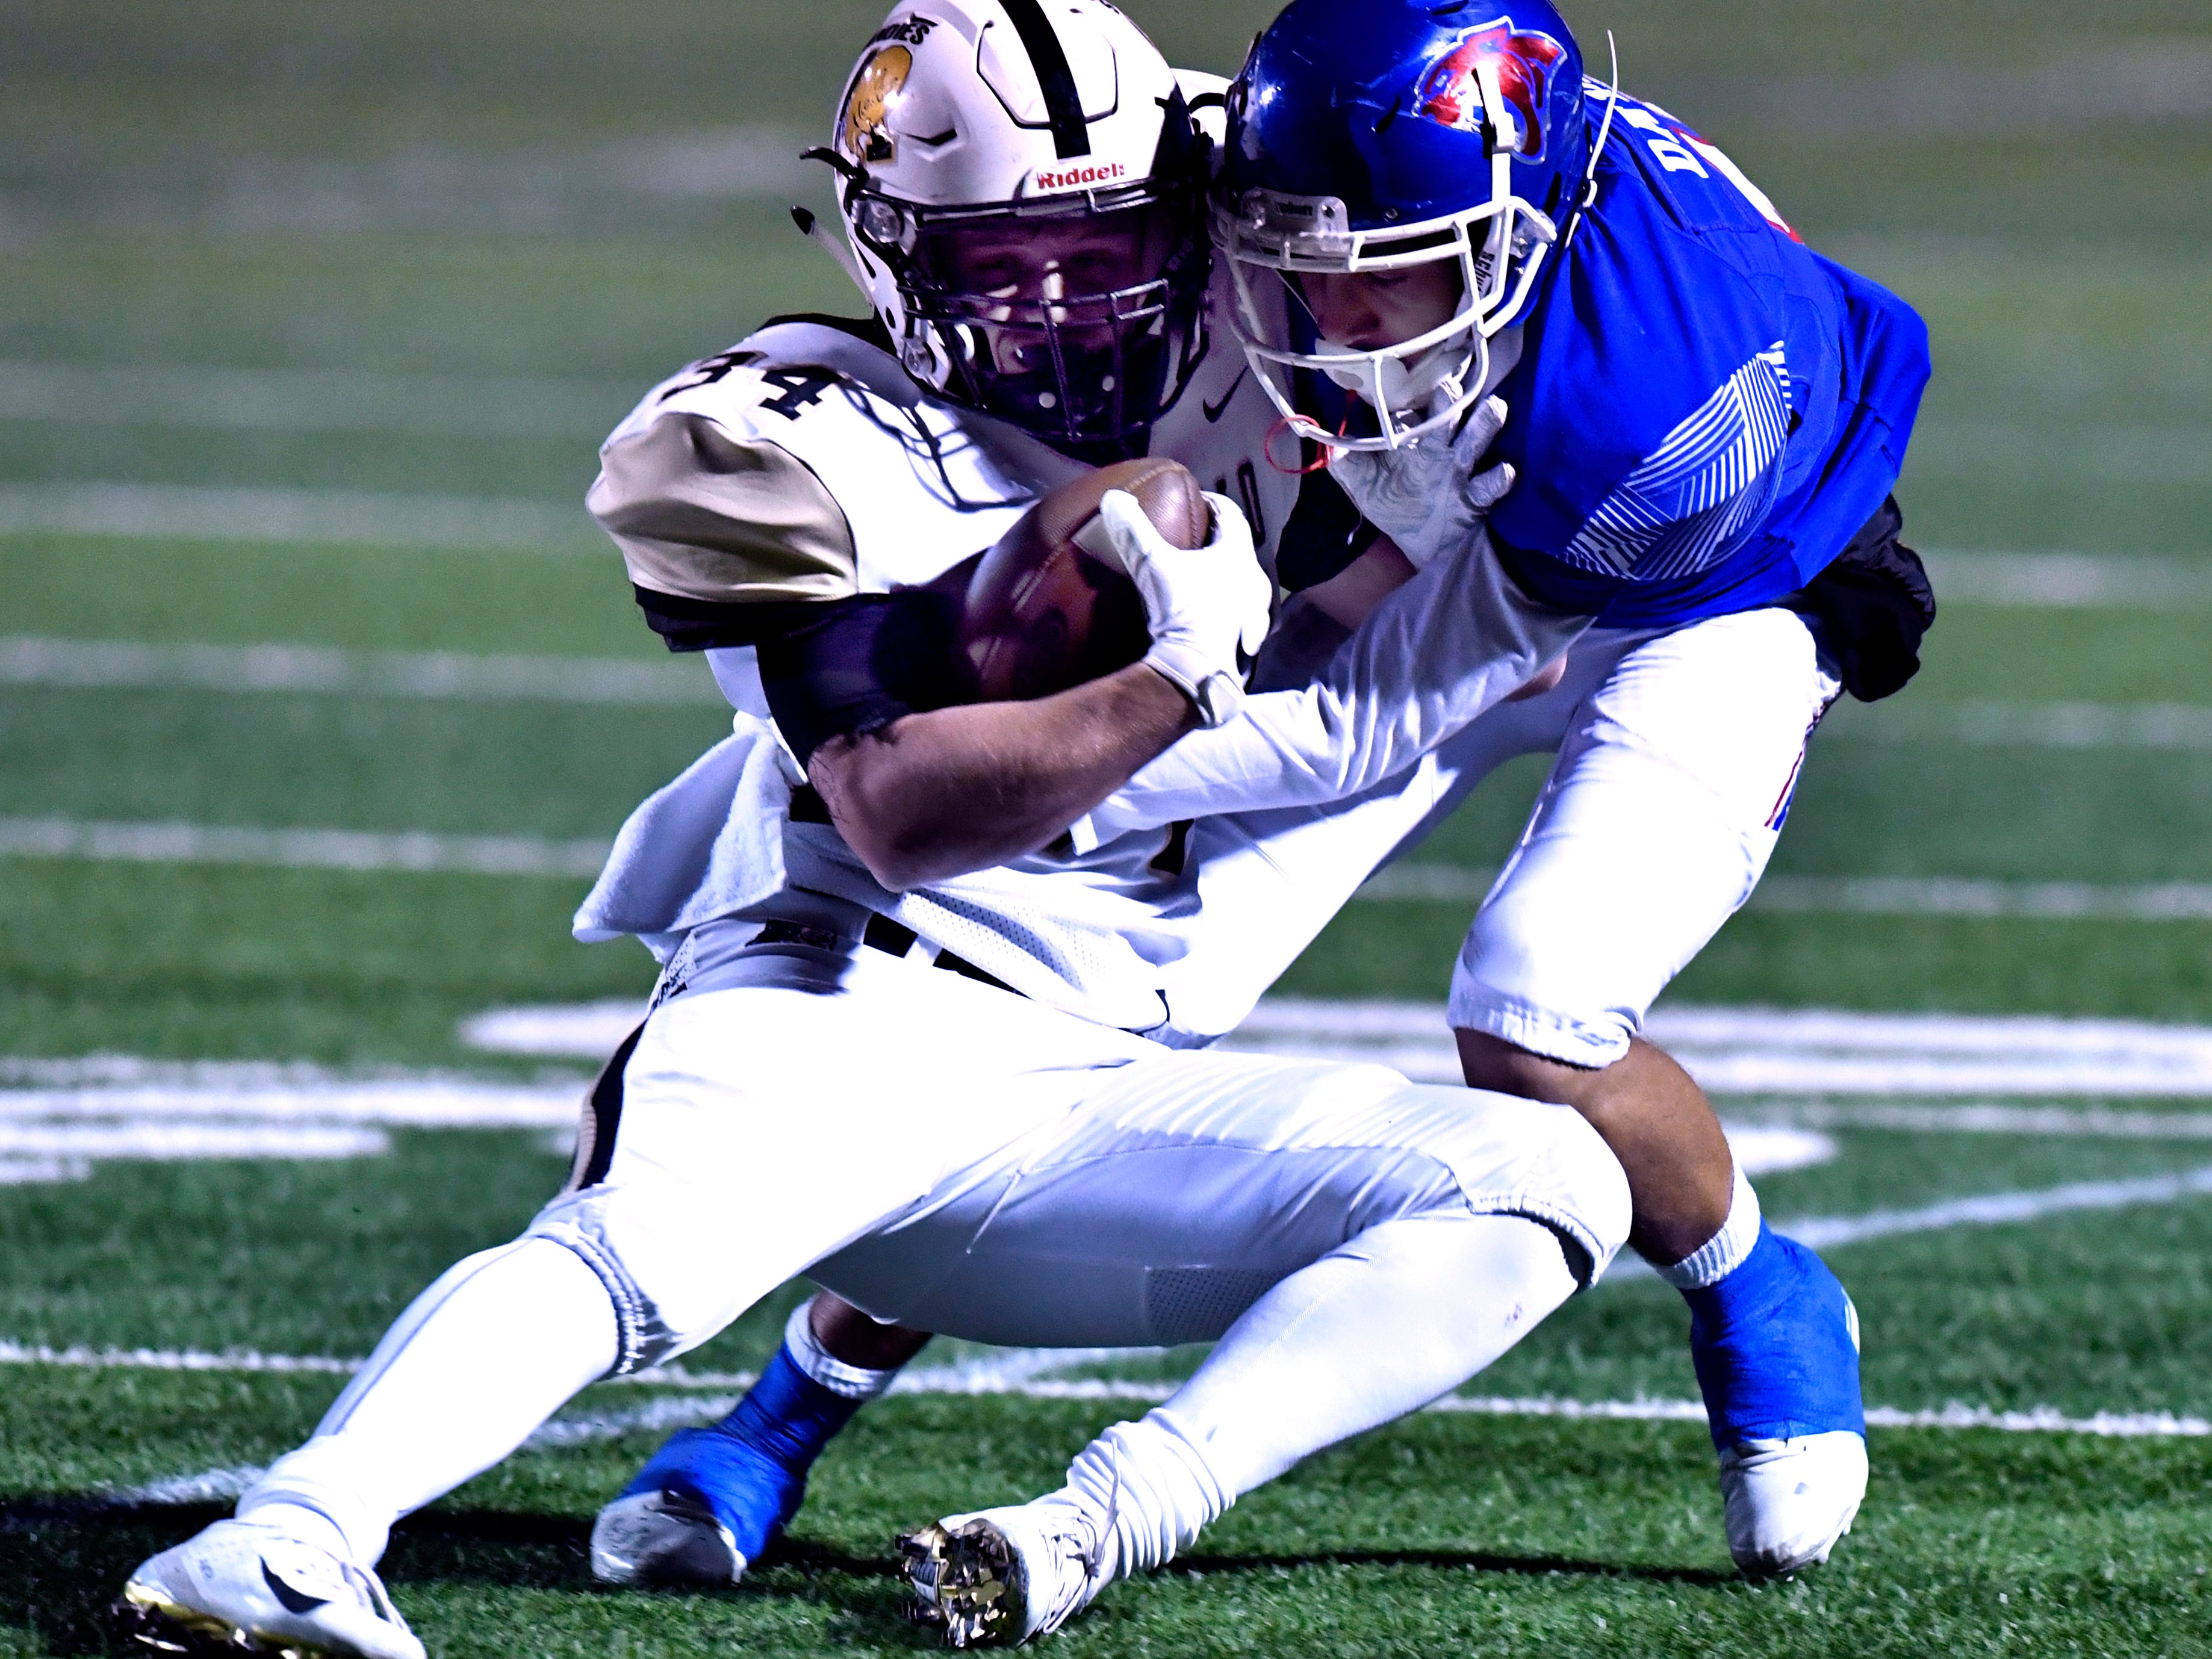 Cooper High defensive back Dylon Davis tackles Amarillo High running back Blake Bedwell during Friday's game at Shotwell Nov. 9, 2018. Final score was 58-27, Amarillo.